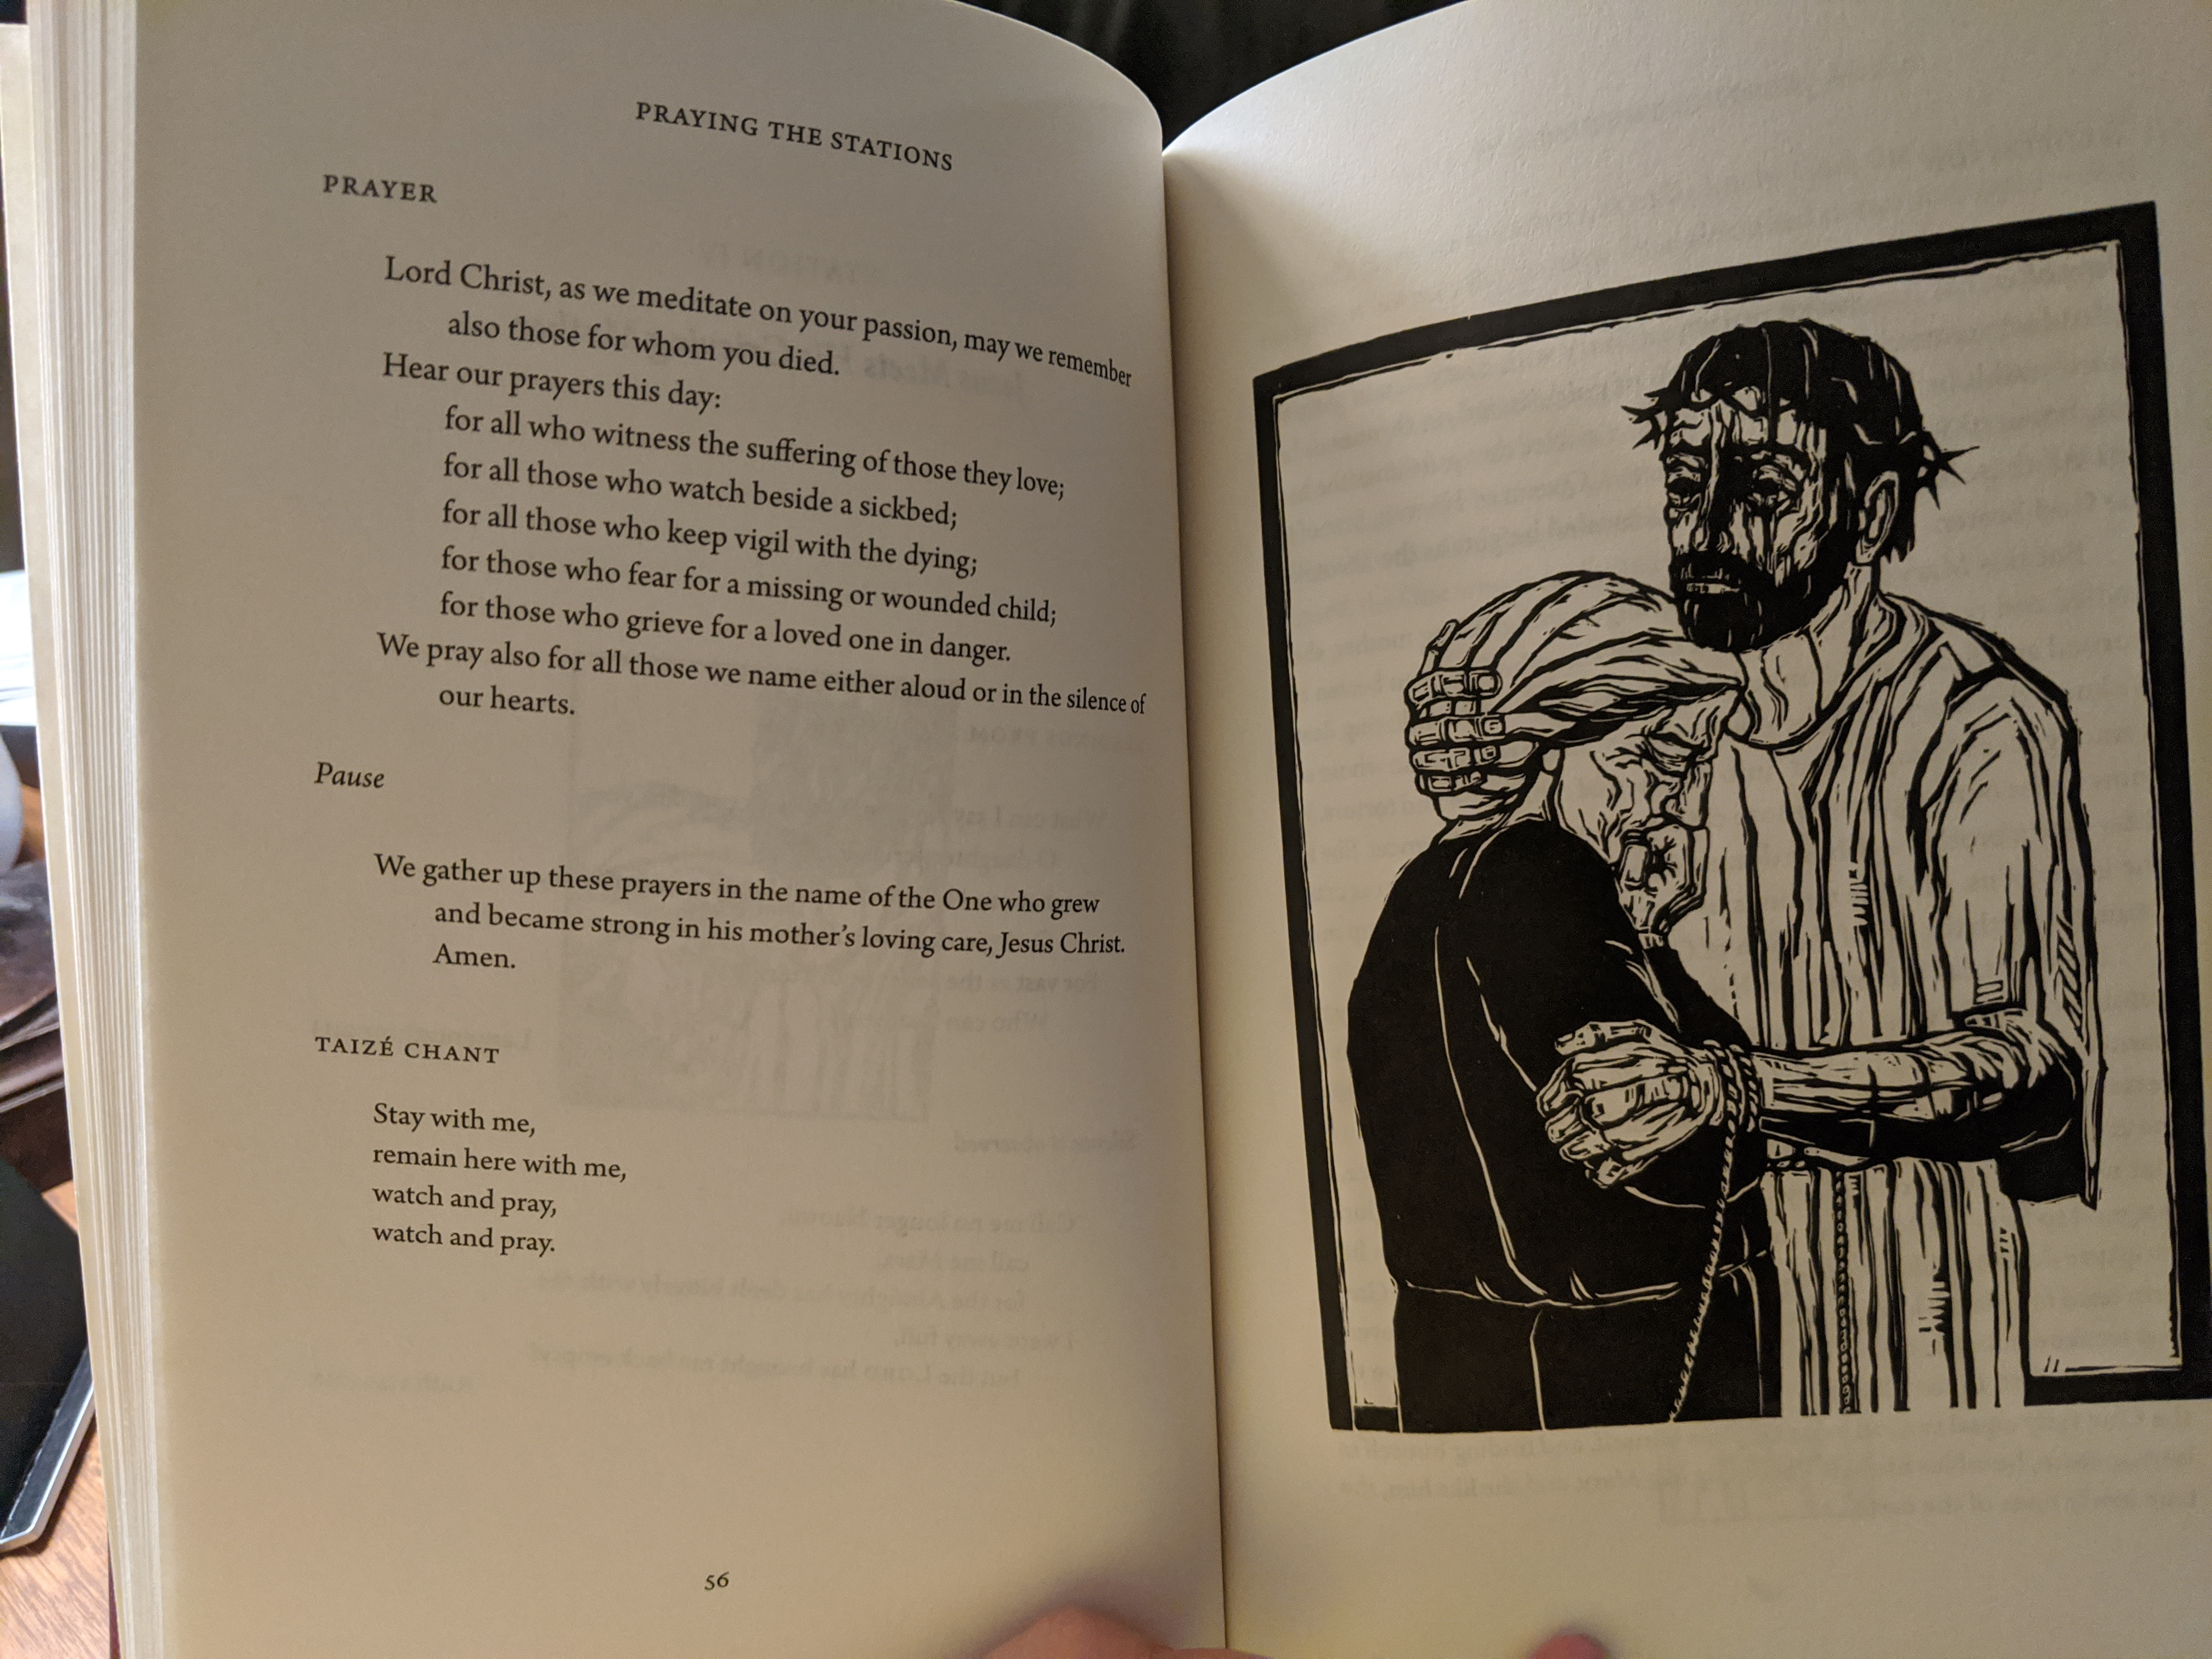 Praying the Stations of the Cross book